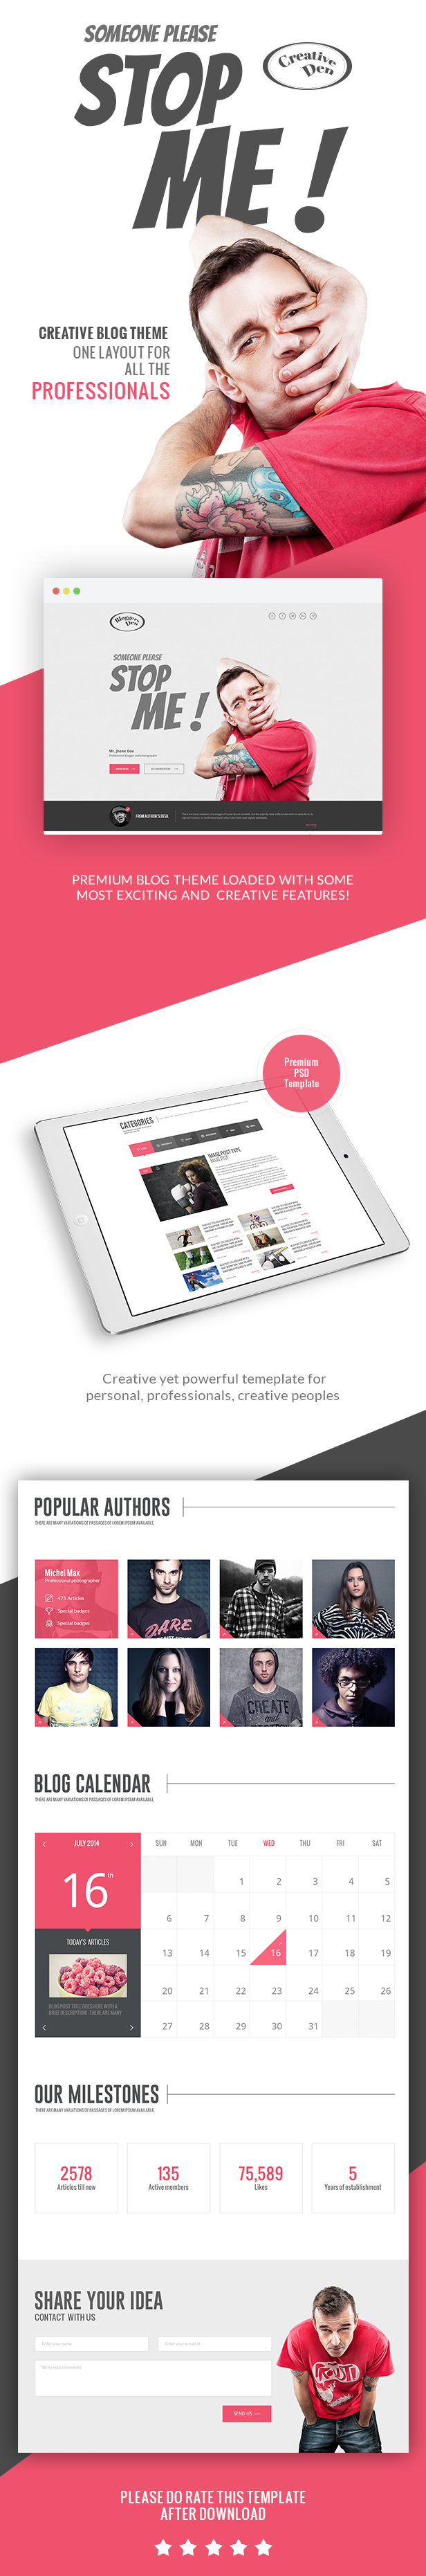 Bloggers Den - One Page Personal Blog Template - 1